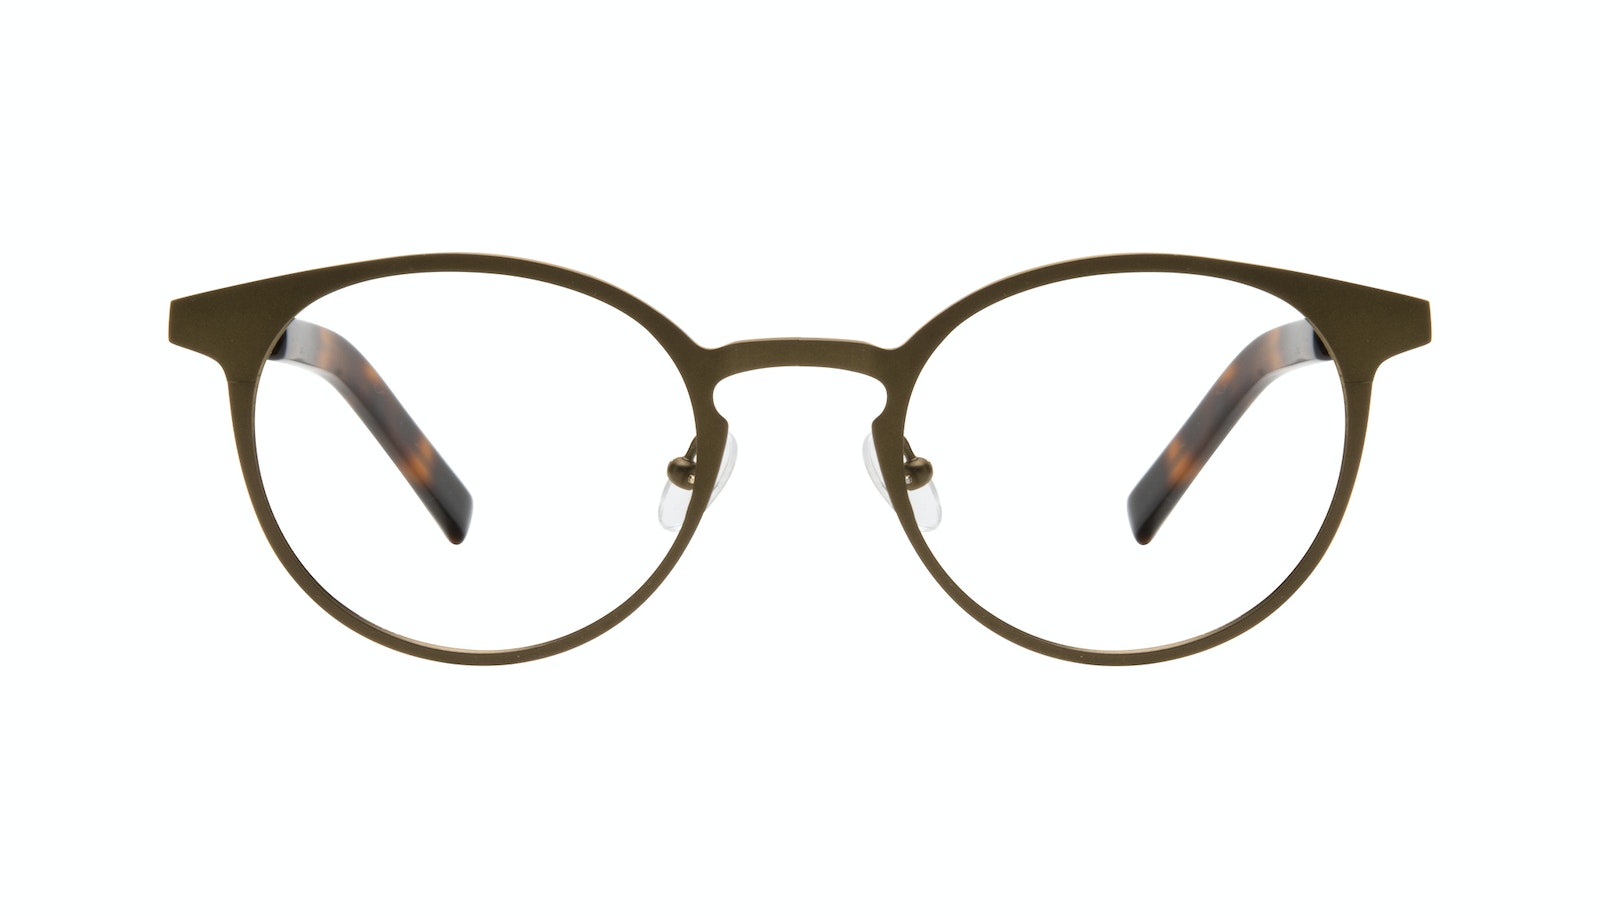 Affordable Fashion Glasses Round Eyeglasses Men Cut Khaki